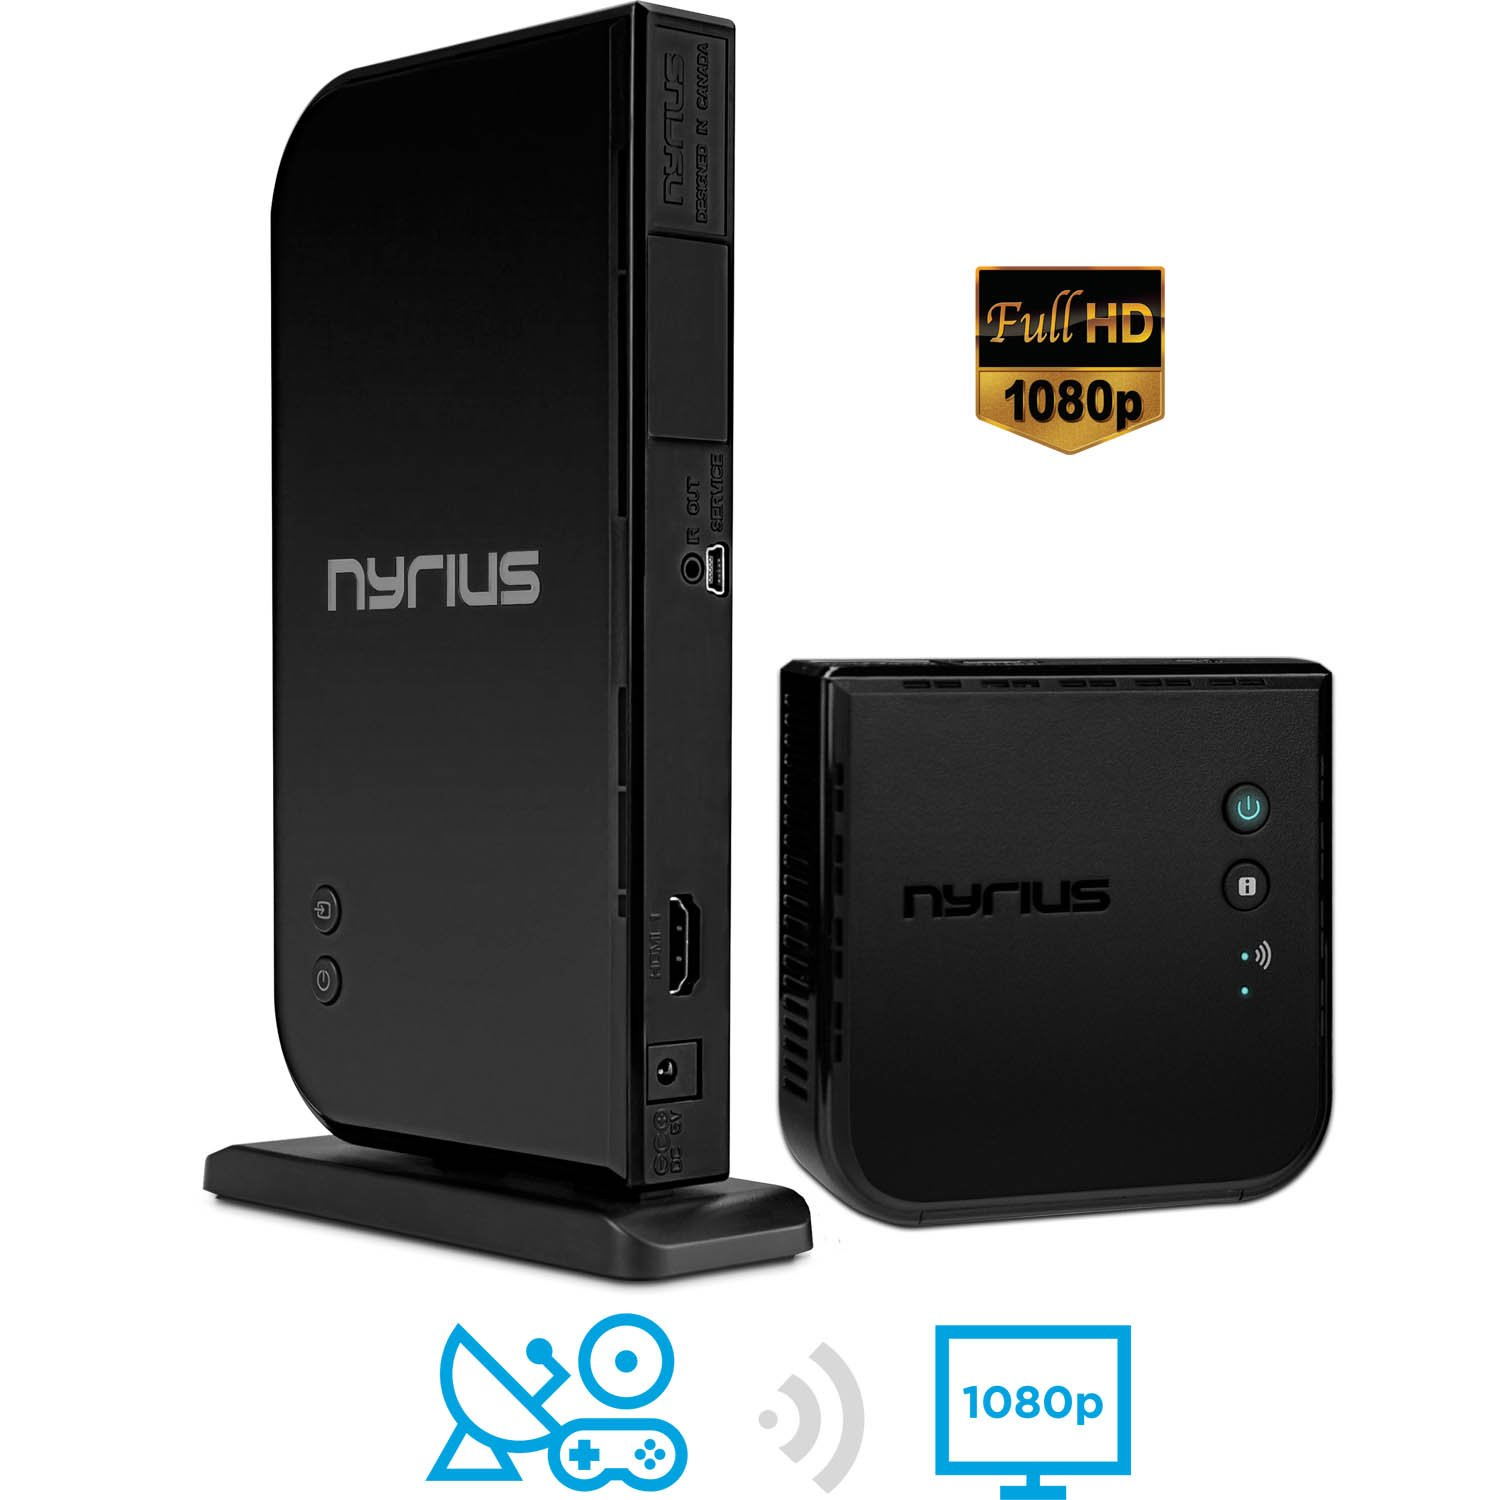 Nyrius ARIES Home HDMI Digital Wireless Transmitter & Receiver for HD 1080p Video Streaming, Cable box, Satellite, Bluray, DVD, PS3, PS4, Xbox 360, Xbox One, Laptops, PC (NAVS500) by Nyrius